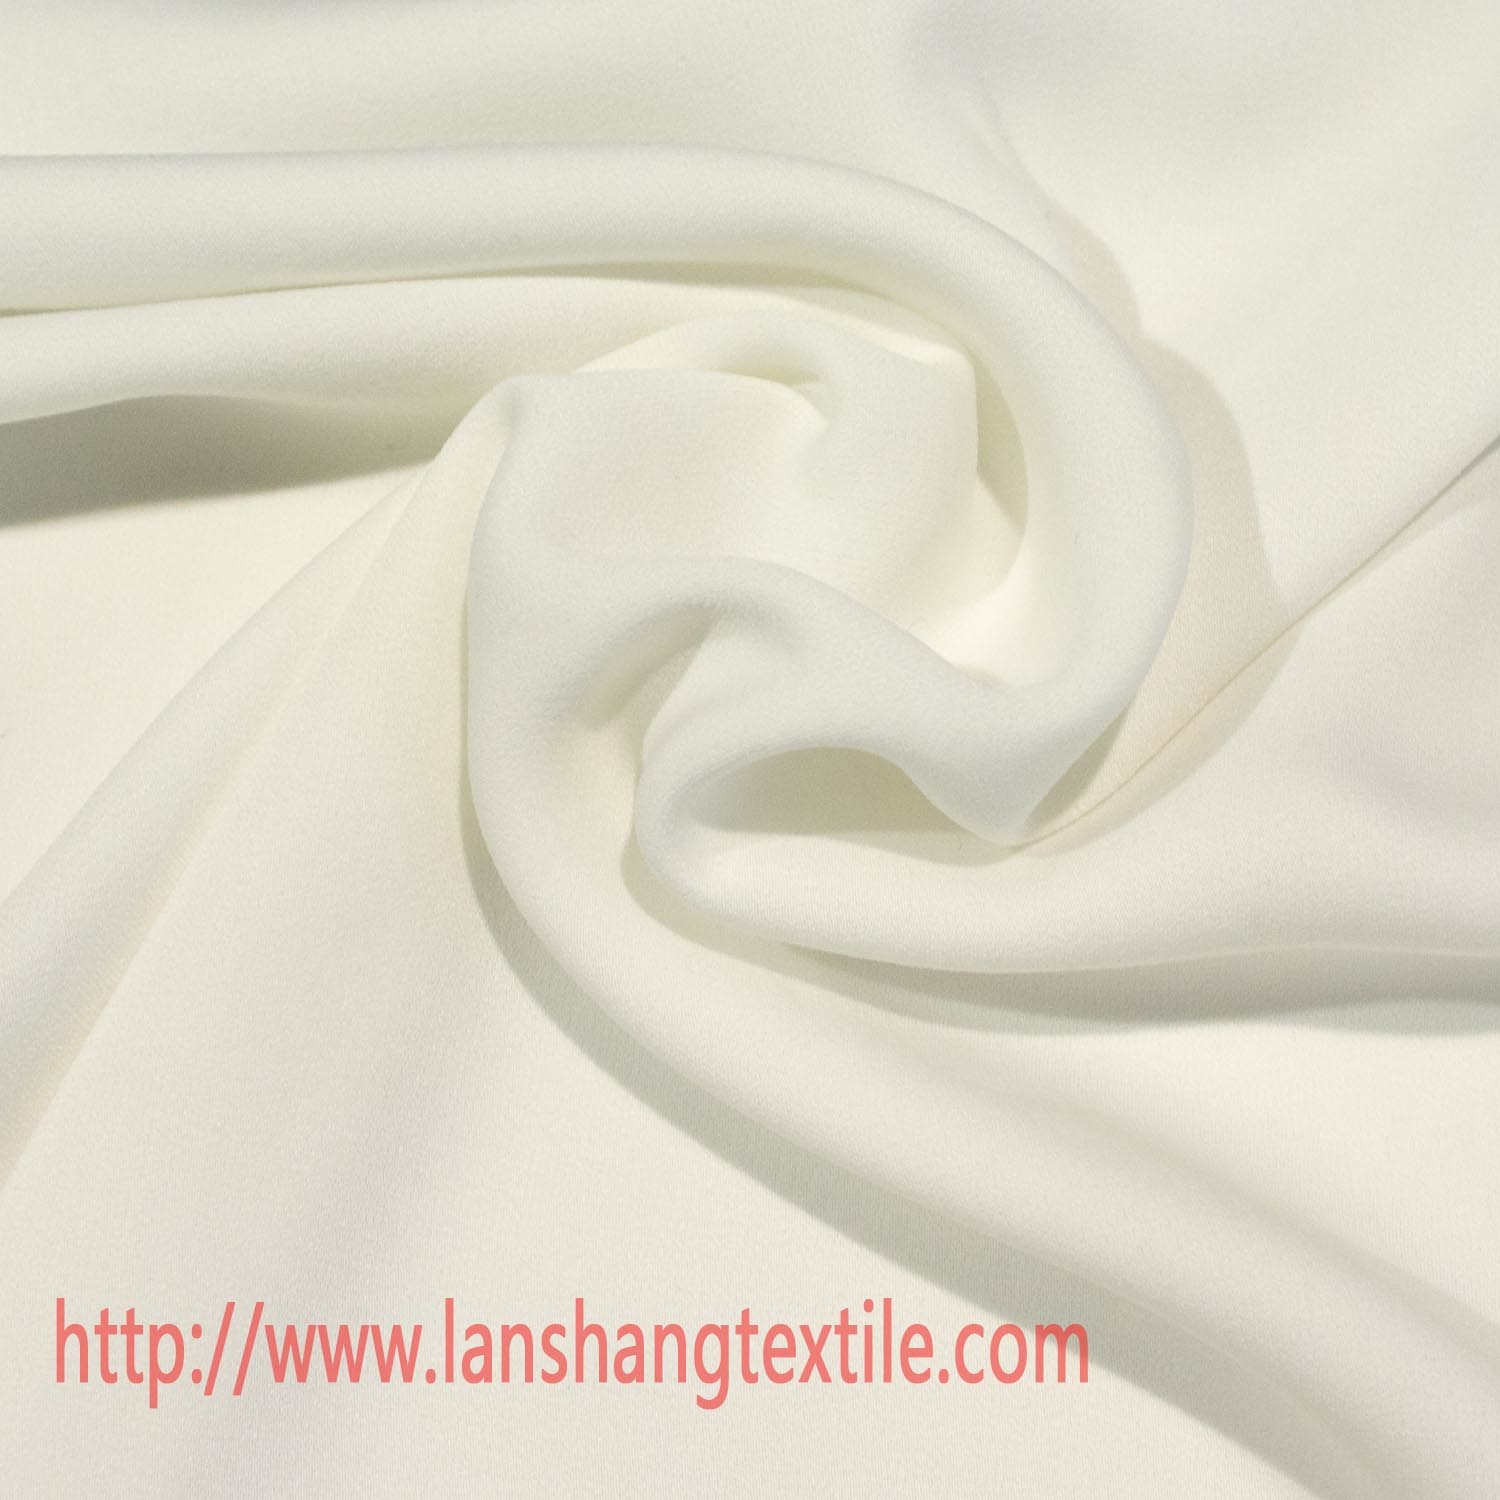 Polyester Fabric Chiffon Fabric Chemical Fabric Side Stretch Chiffon Fabric for Dress Skirt Garment Home Textile pictures & photos